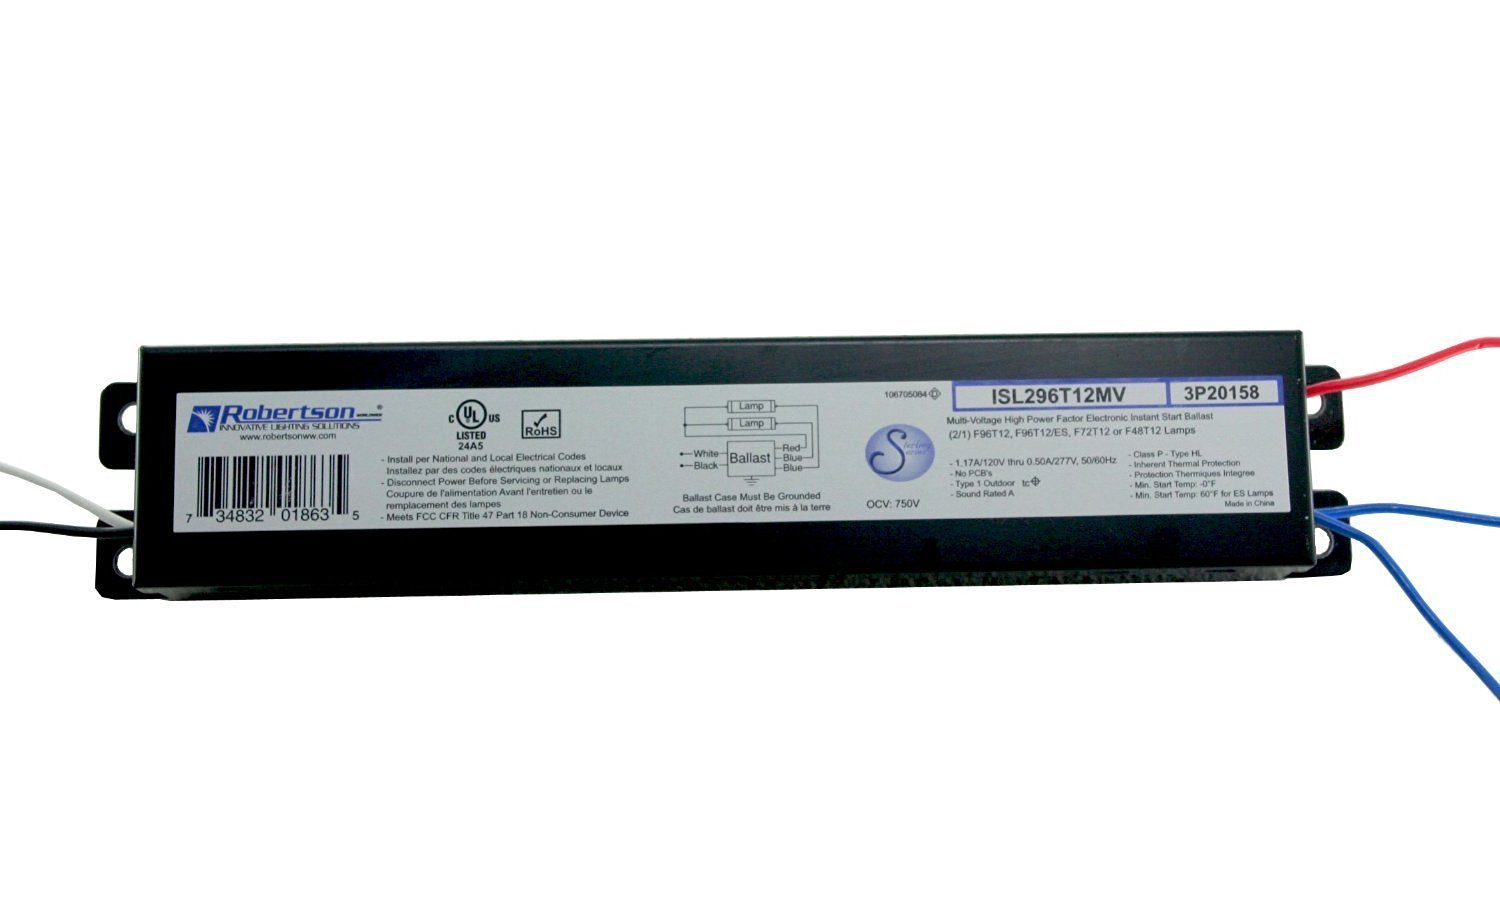 ROBERTSON 3P20158 ISL296T12MV Fluorescent Electronic Ballast for 2 F96T12 Linear Lamps, Instant Start, 120-277Vac, 50-60Hz, Normal Ballast Factor, HPF Robertson Worldwide